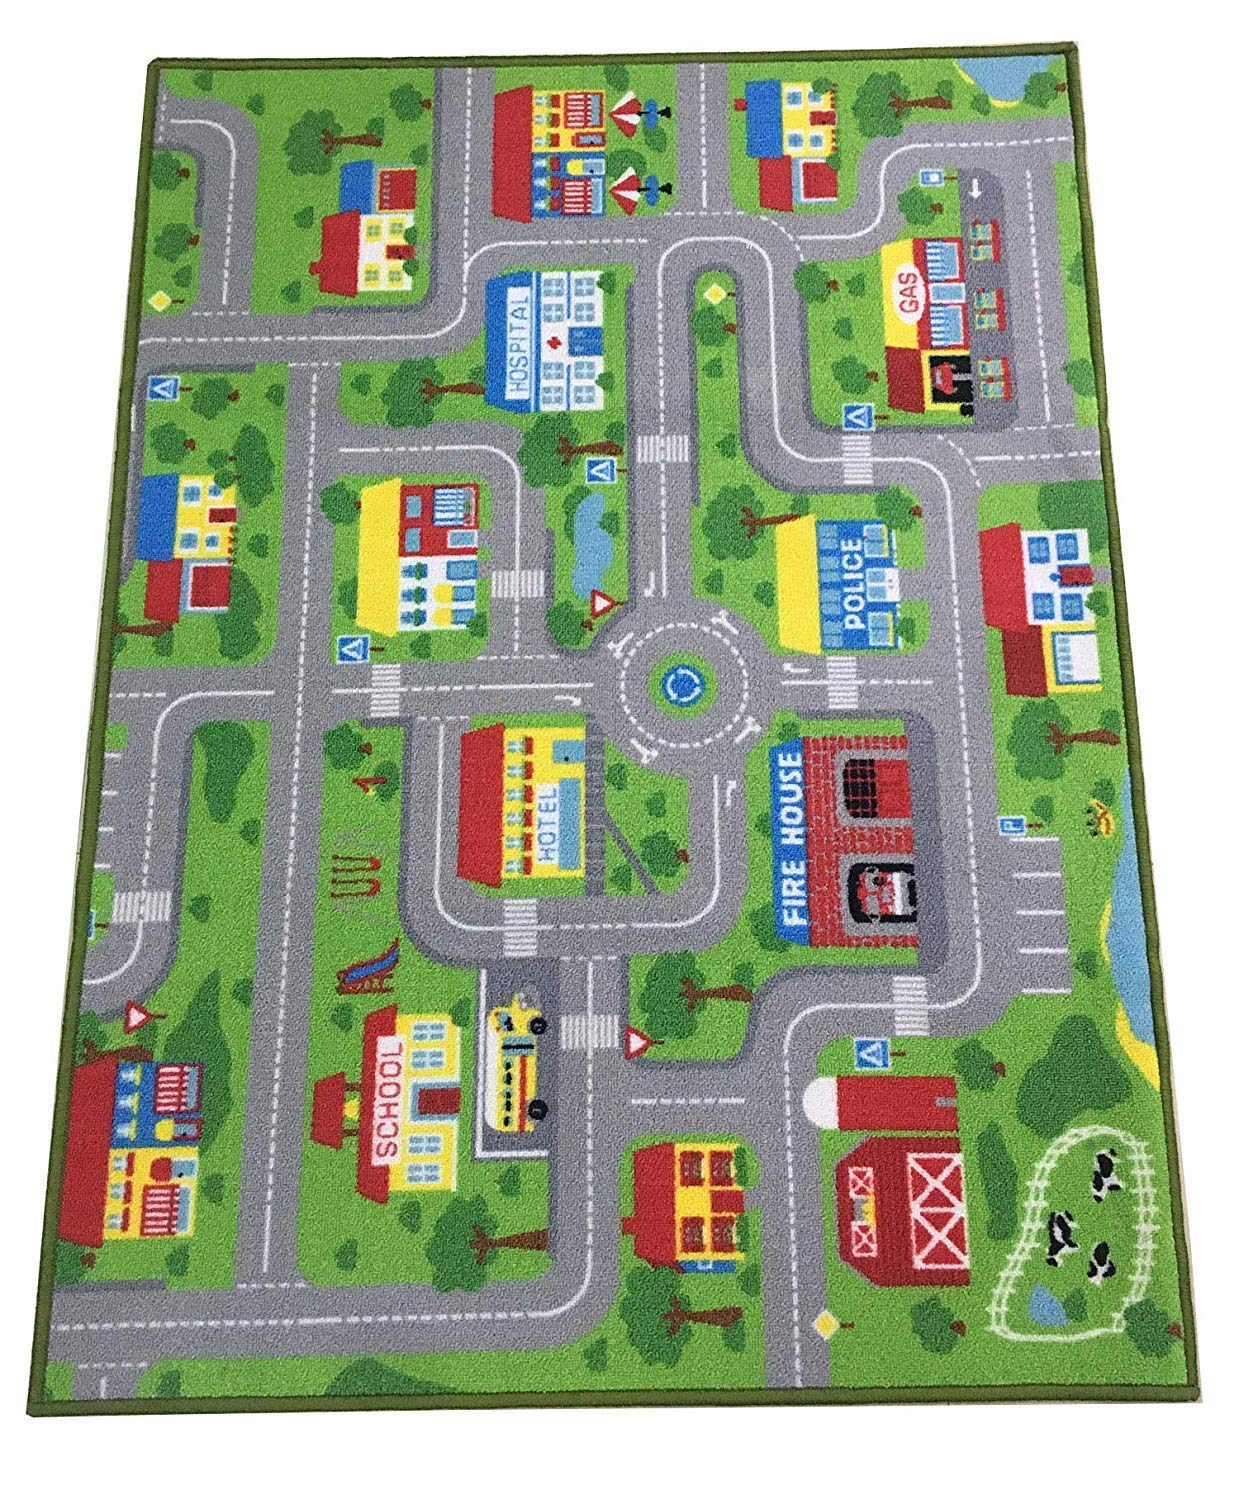 City Street Map Kids' Rug with Roads Kids Rug Play mat with School Hospital Station Bank Hotel Book Store Government Workshop Farm for Boy Girl Nursery Bedroom Playroom Classroom (39'' X 51'')